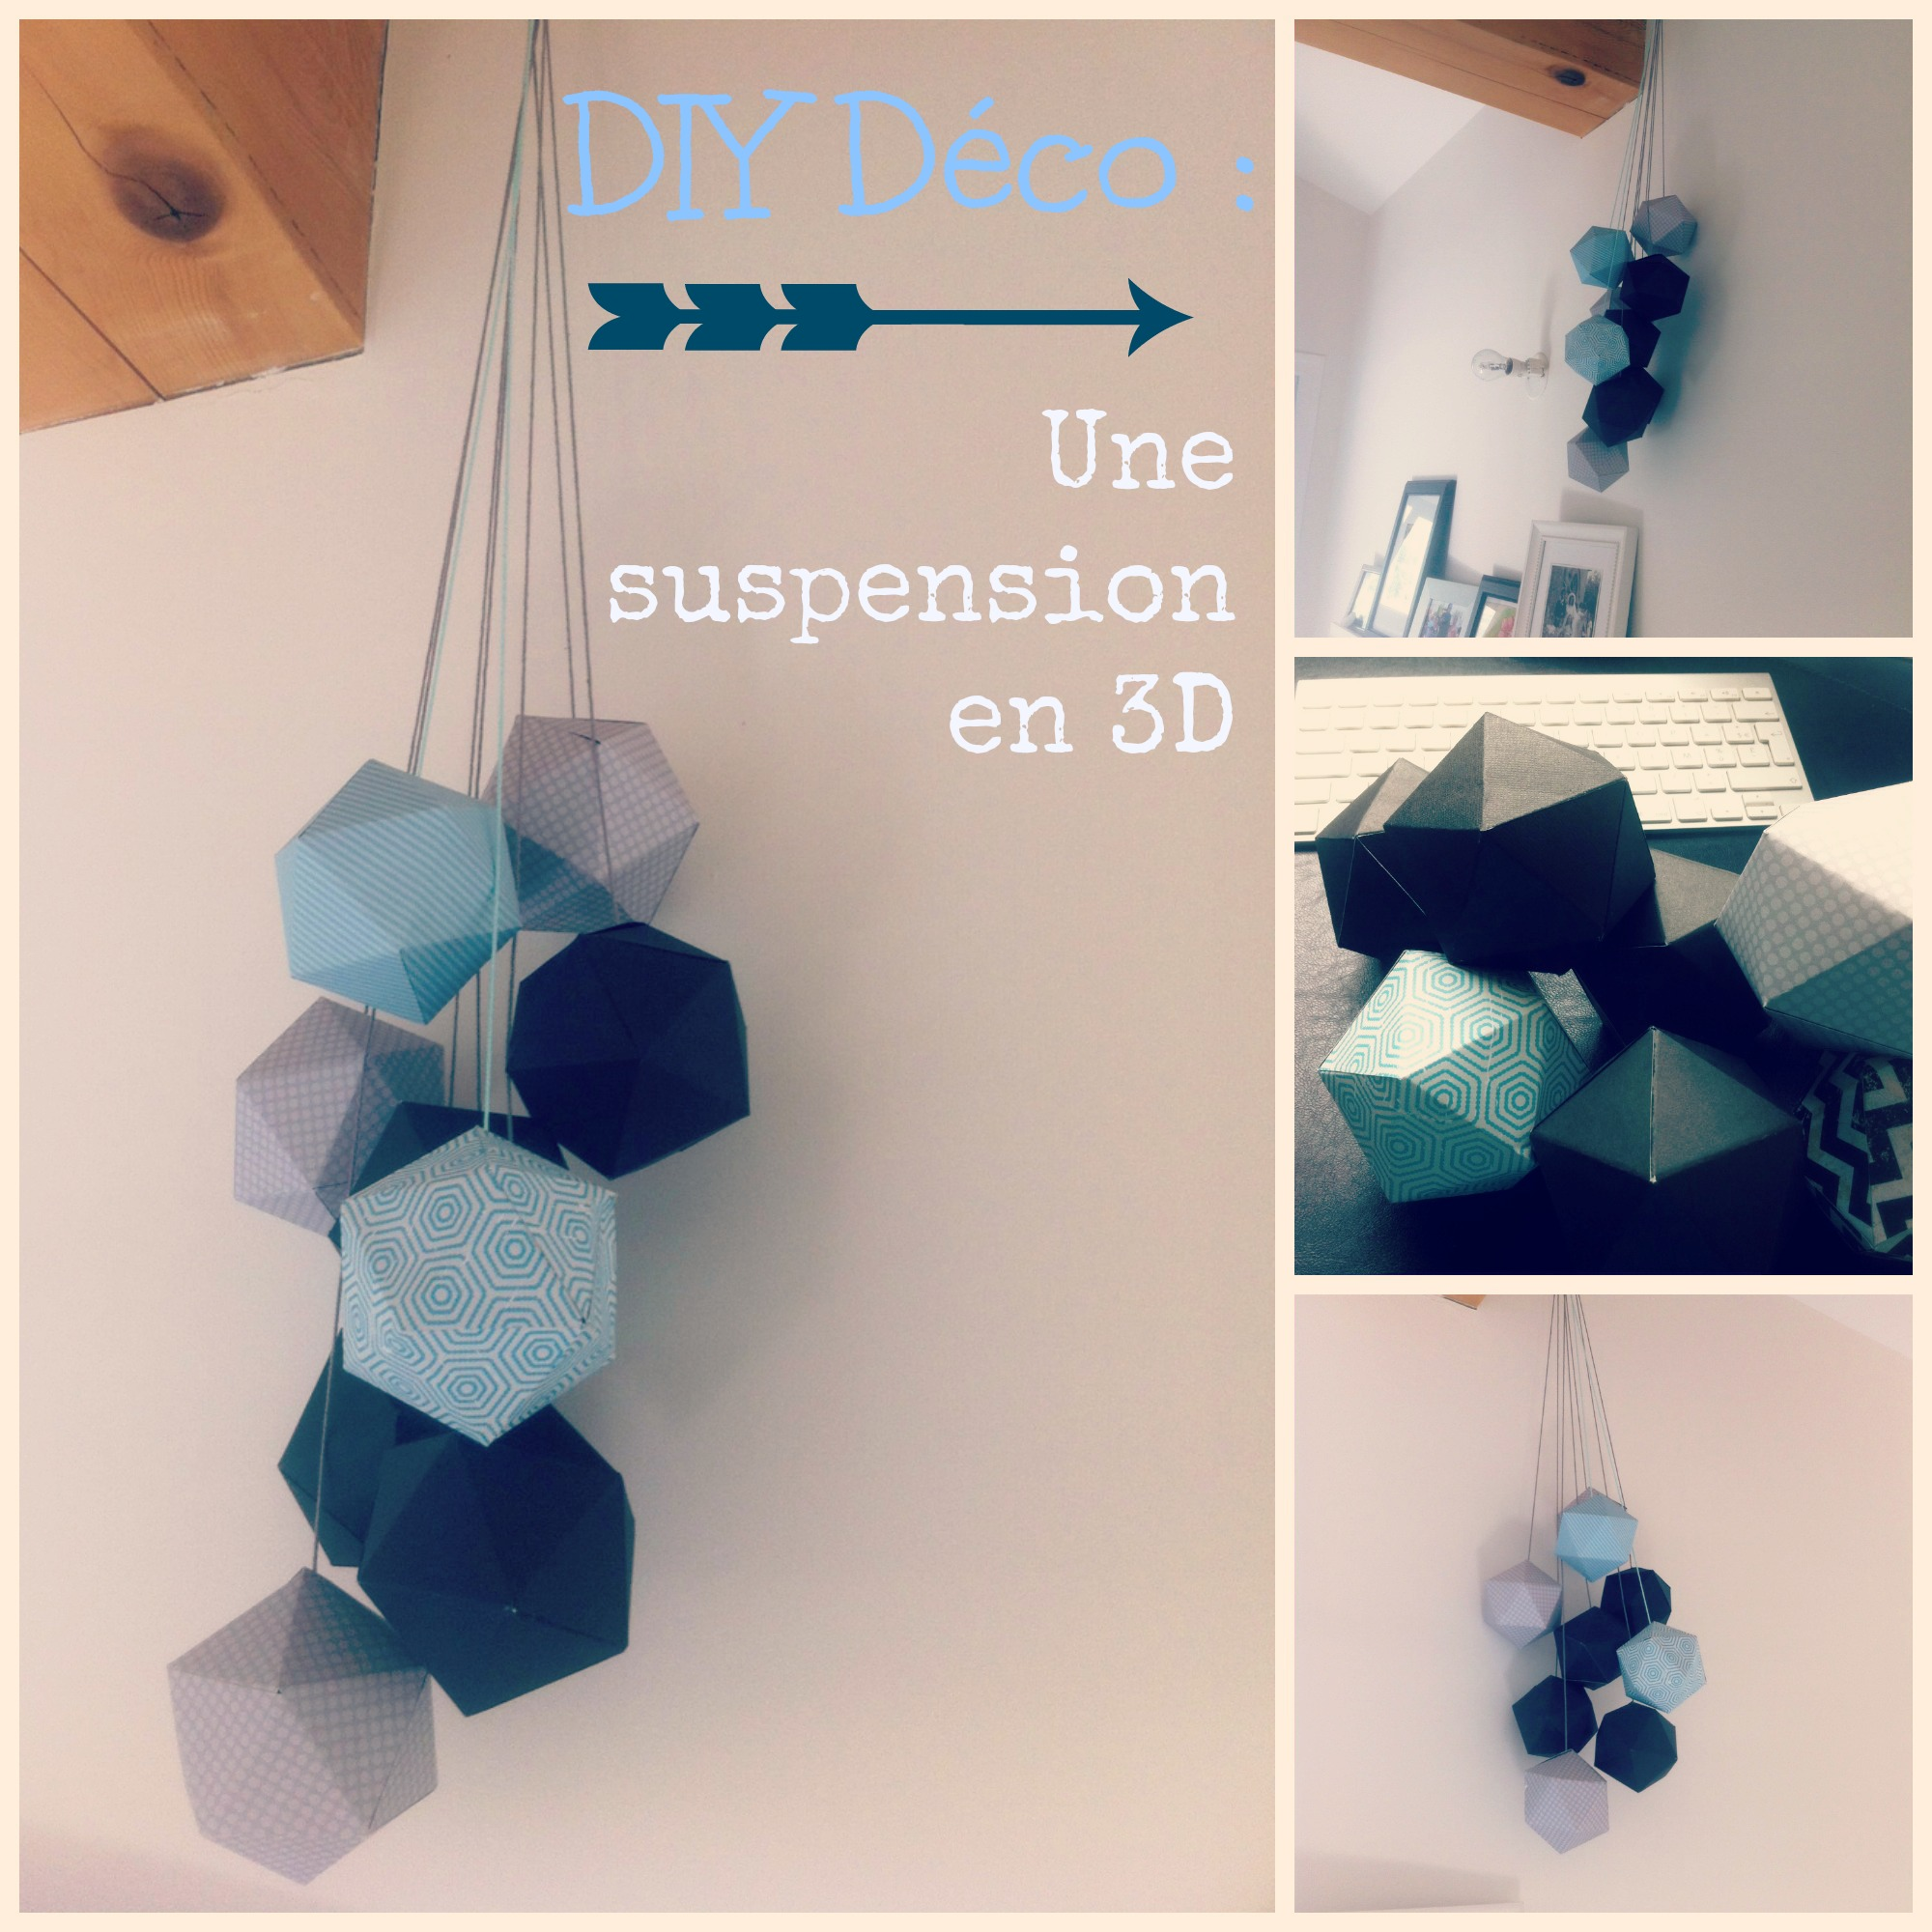 Diy d co une suspension en 3d pour votre int rieur Article de decoration interieur